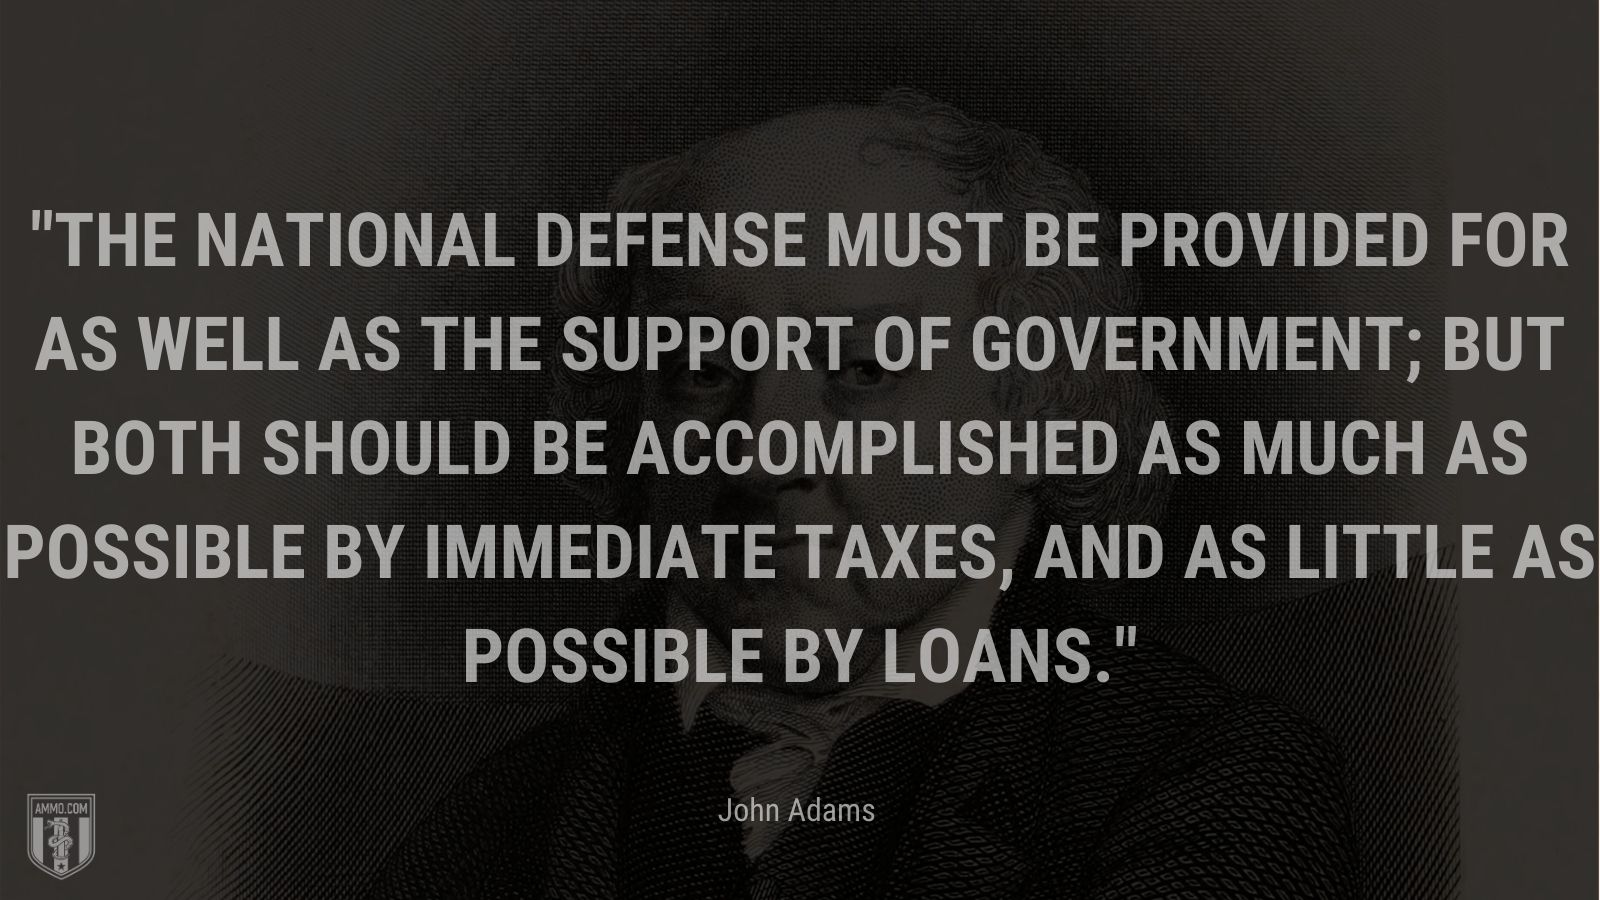 """""""The national defense must be provided for as well as the support of Government; but both should be accomplished as much as possible by immediate taxes, and as little as possible by loans."""" - John Adams"""